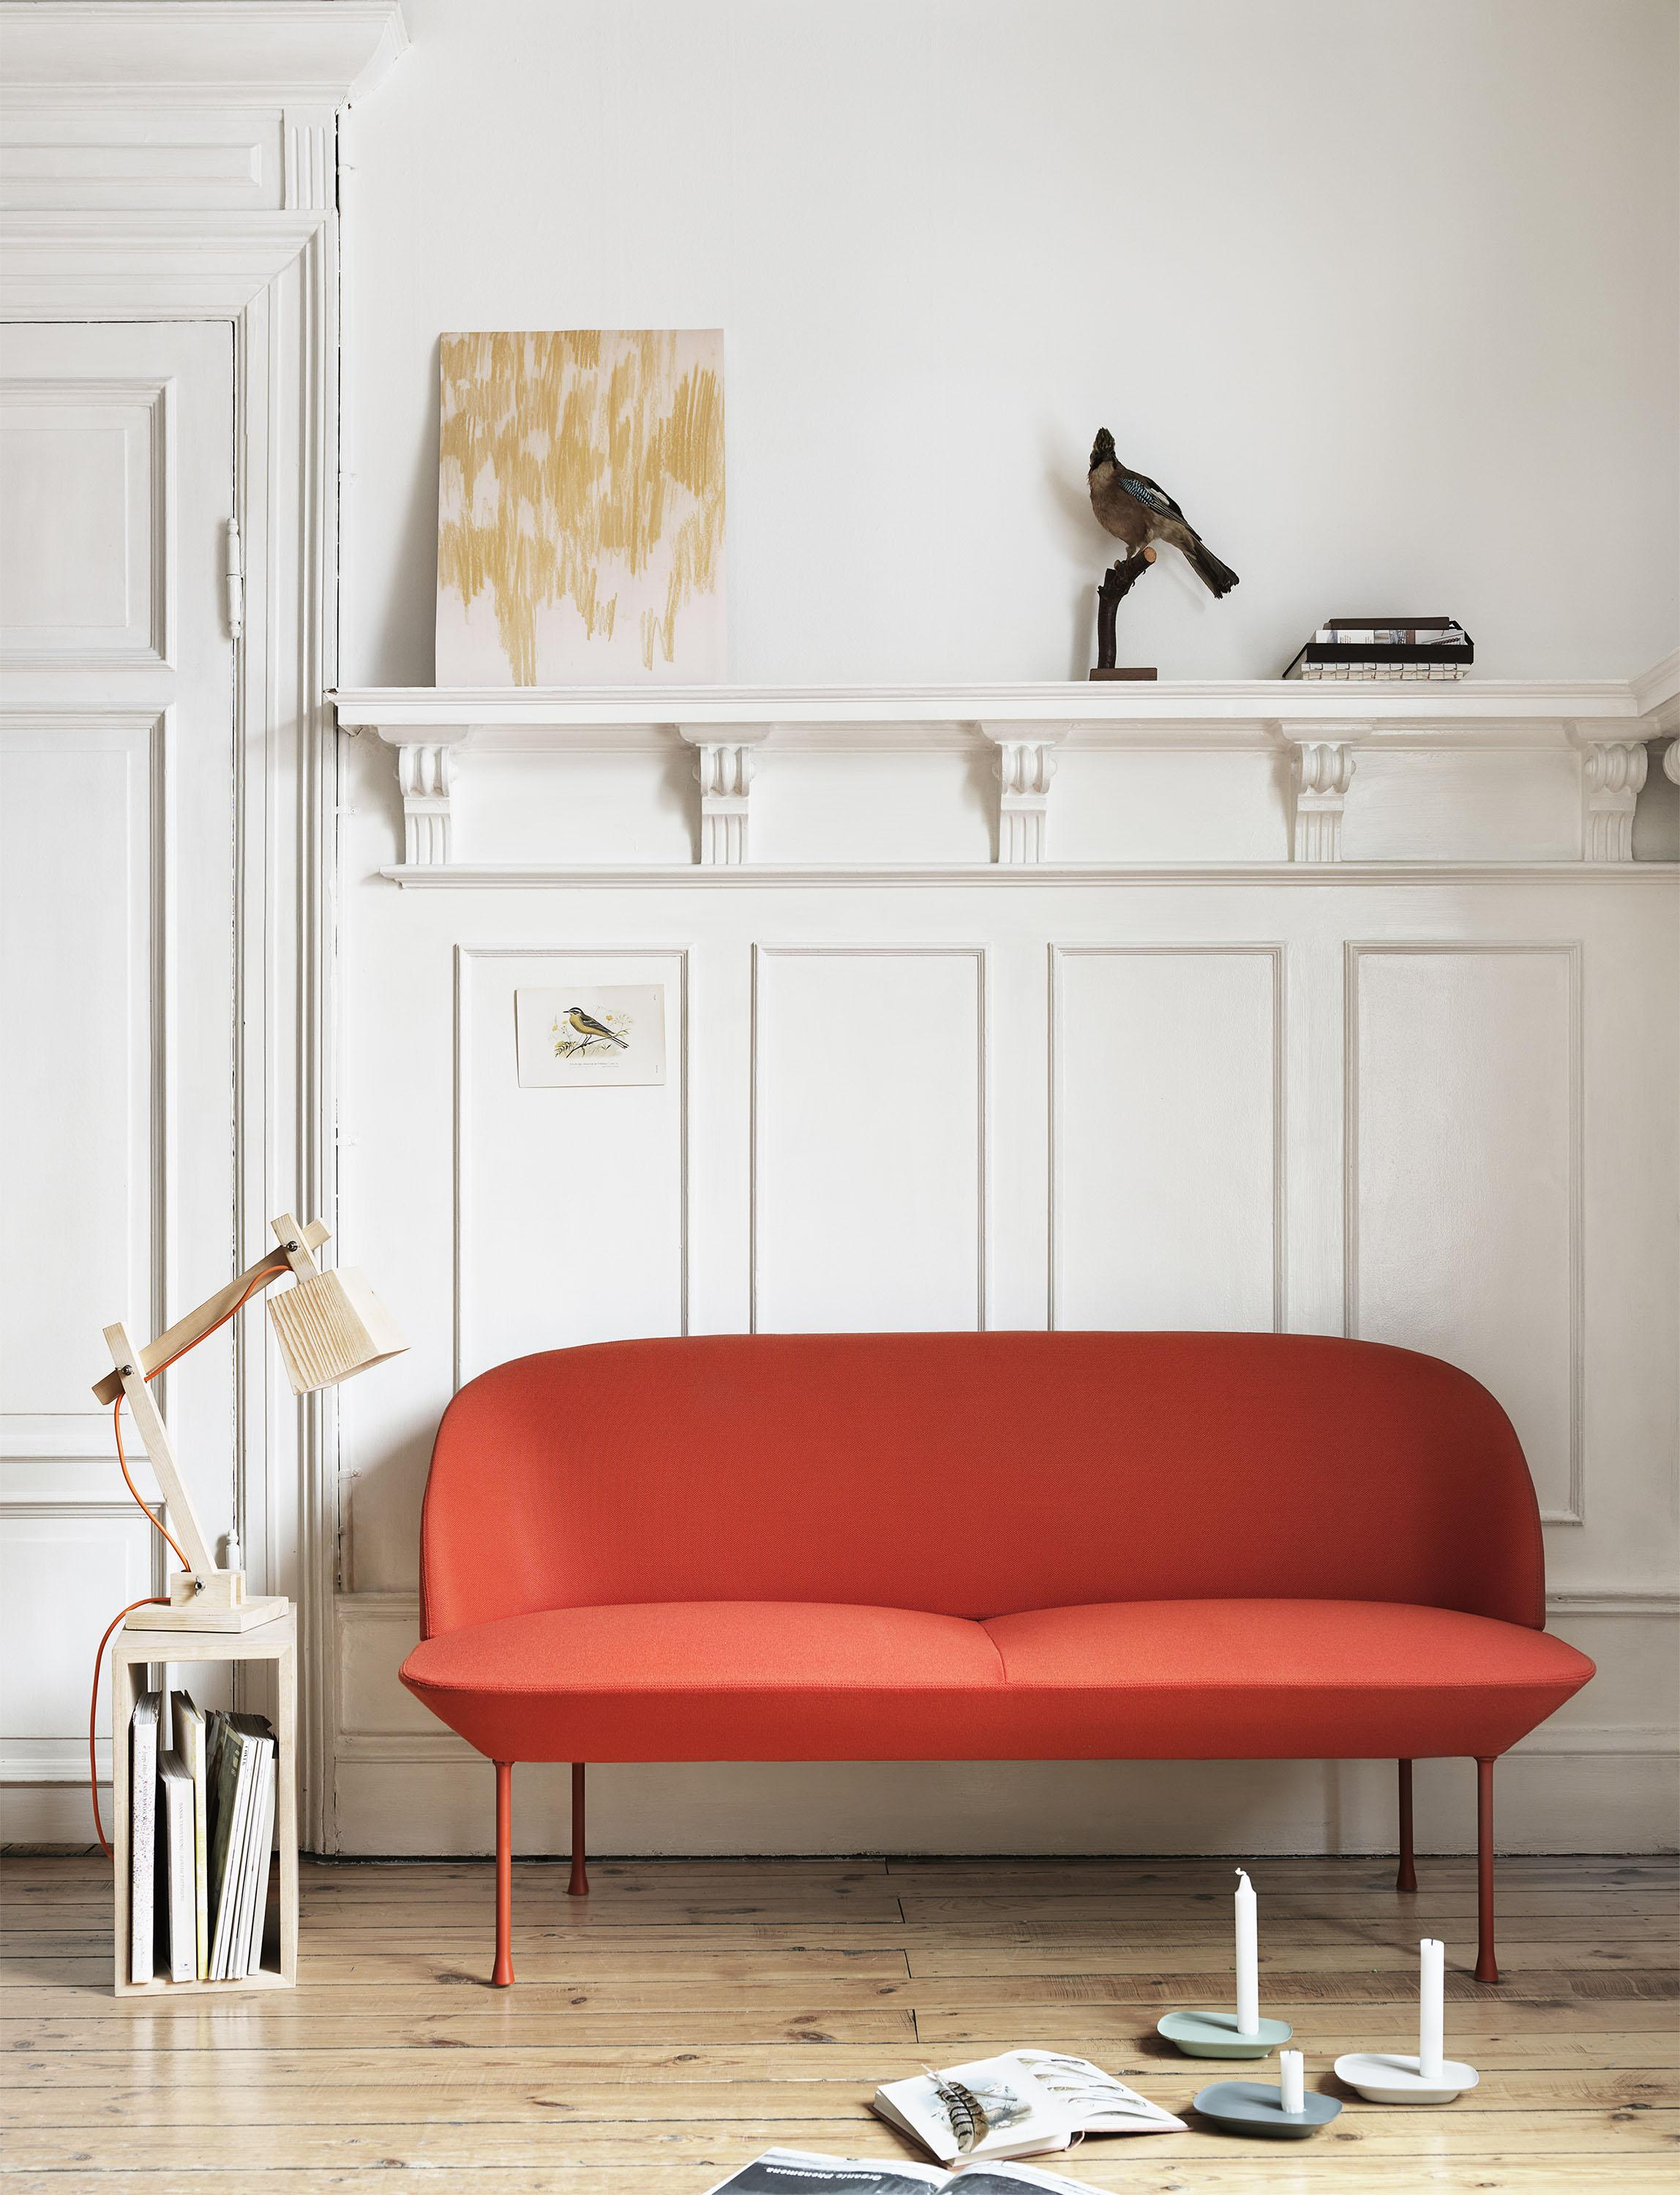 Rotes Sofa • Bilder & Ideen • COUCH